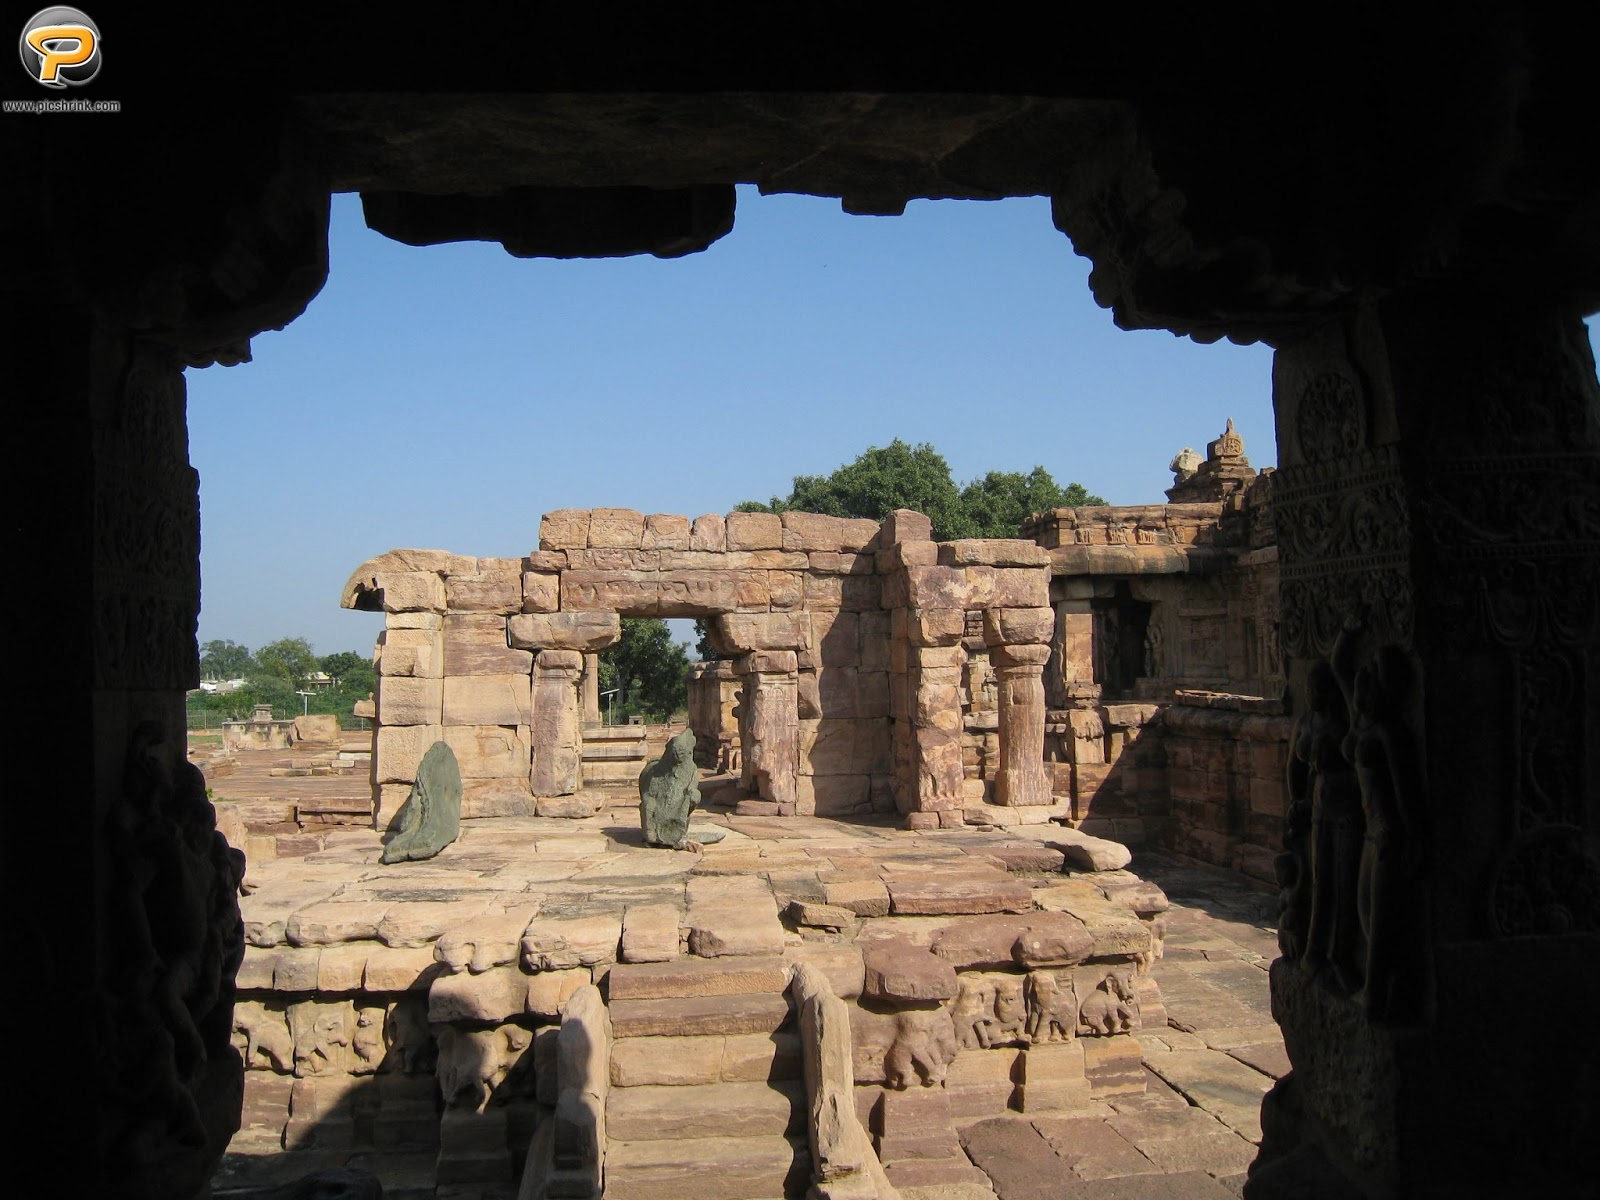 Travelling experience and Photos of Pattadakkal, North Karnataka